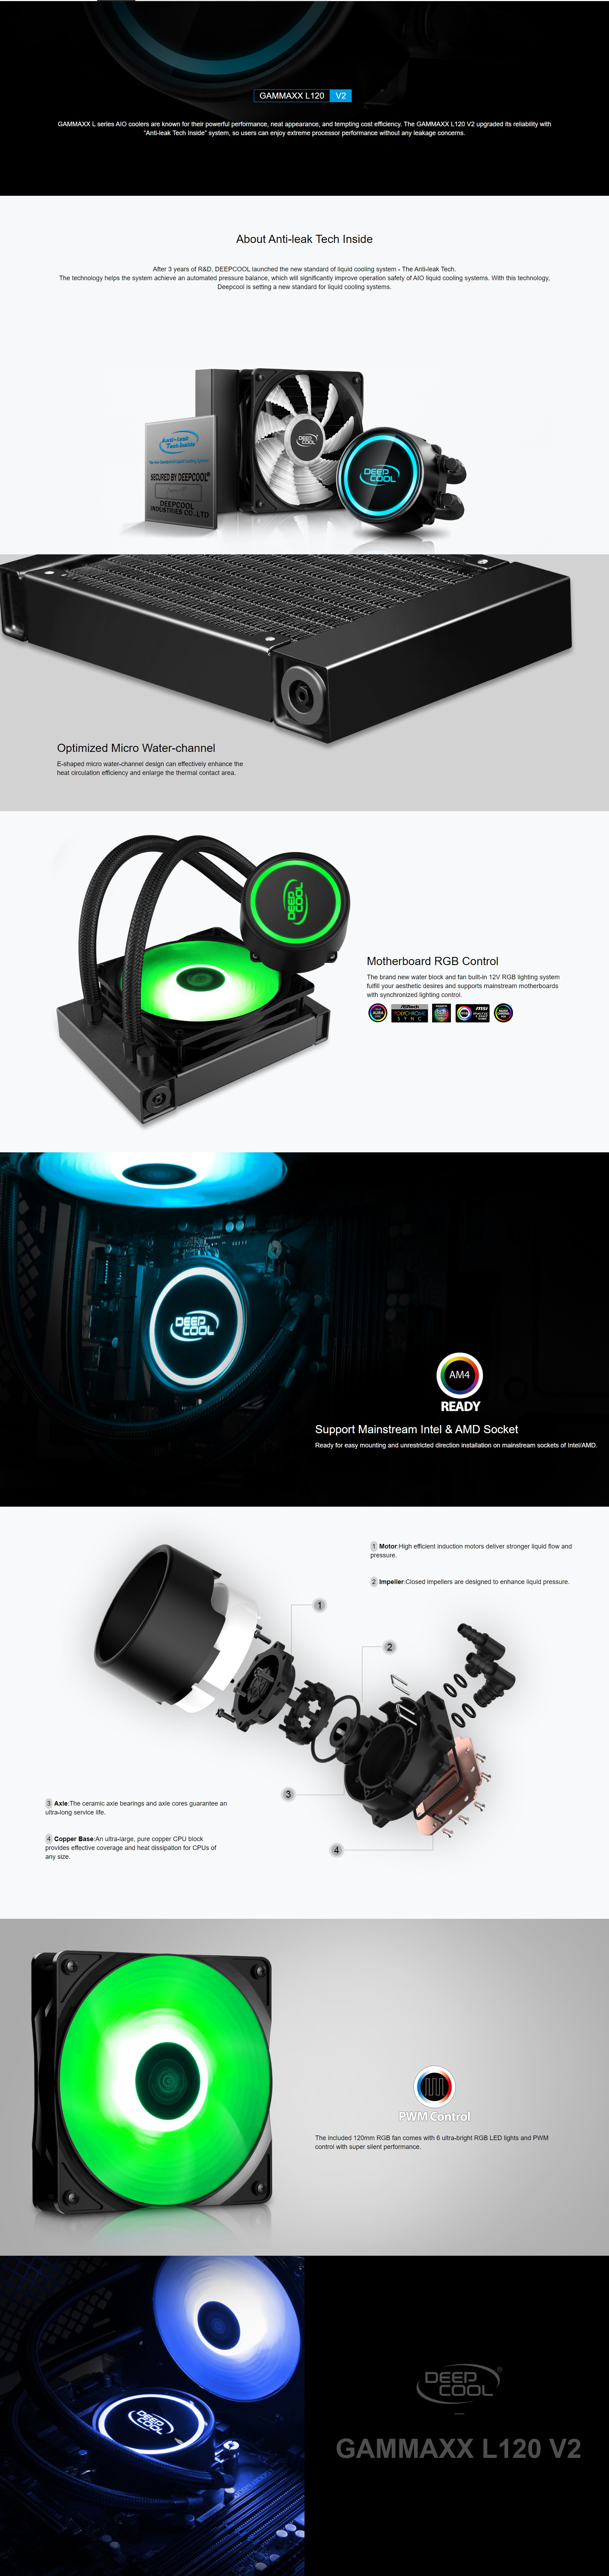 A large marketing image providing additional information about the product Deepcool GAMMAXX L120 V2 RGB AIO Liquid CPU Cooler - Additional alt info not provided